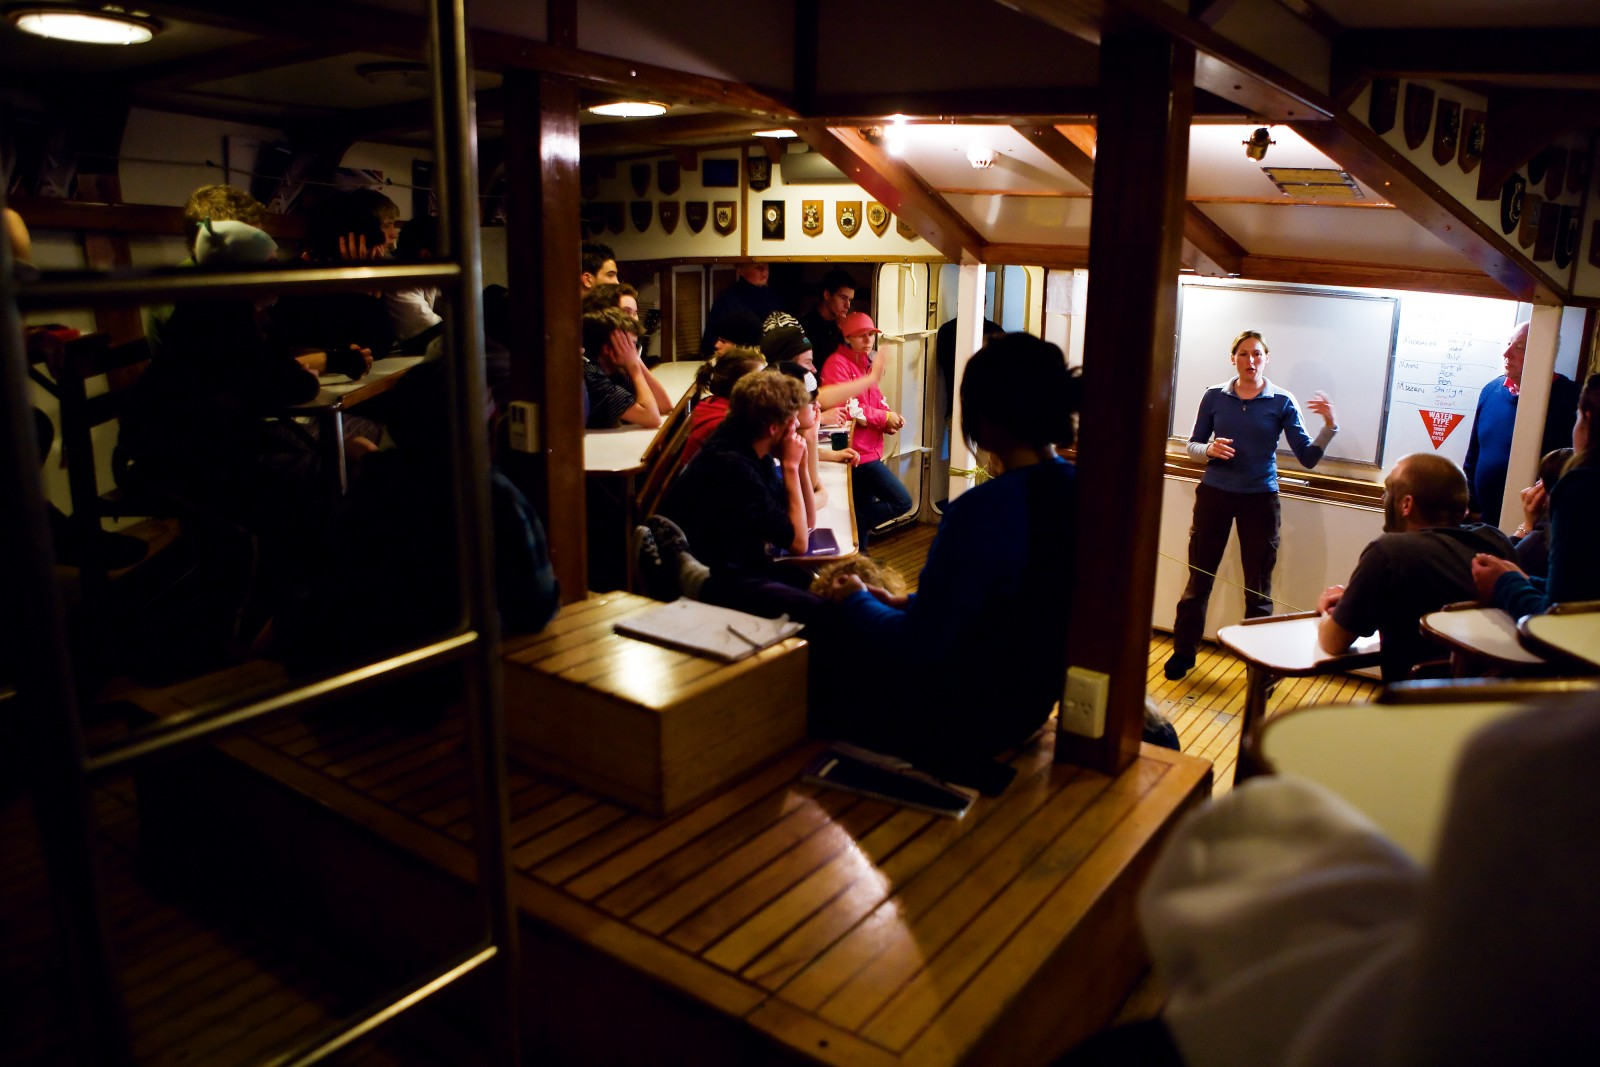 Unusually, on Voyage 530 the greater challenge lay with the ship's crew rather than the trainees. As the storm raged for 30 hours, crew not only had the ship's safety to think of but also the entertainment of the 40 trainees below decks. At such times, the Spirit's auditorium becomes a vital cog in the operation of the ship and energy is channelled towards team-building exercises, performances and navigation and safety lessons. For some, the challenge of accepting leadership in a team-building exercise or talking in front of a group of their peers can be as daunting as any physical challenges.